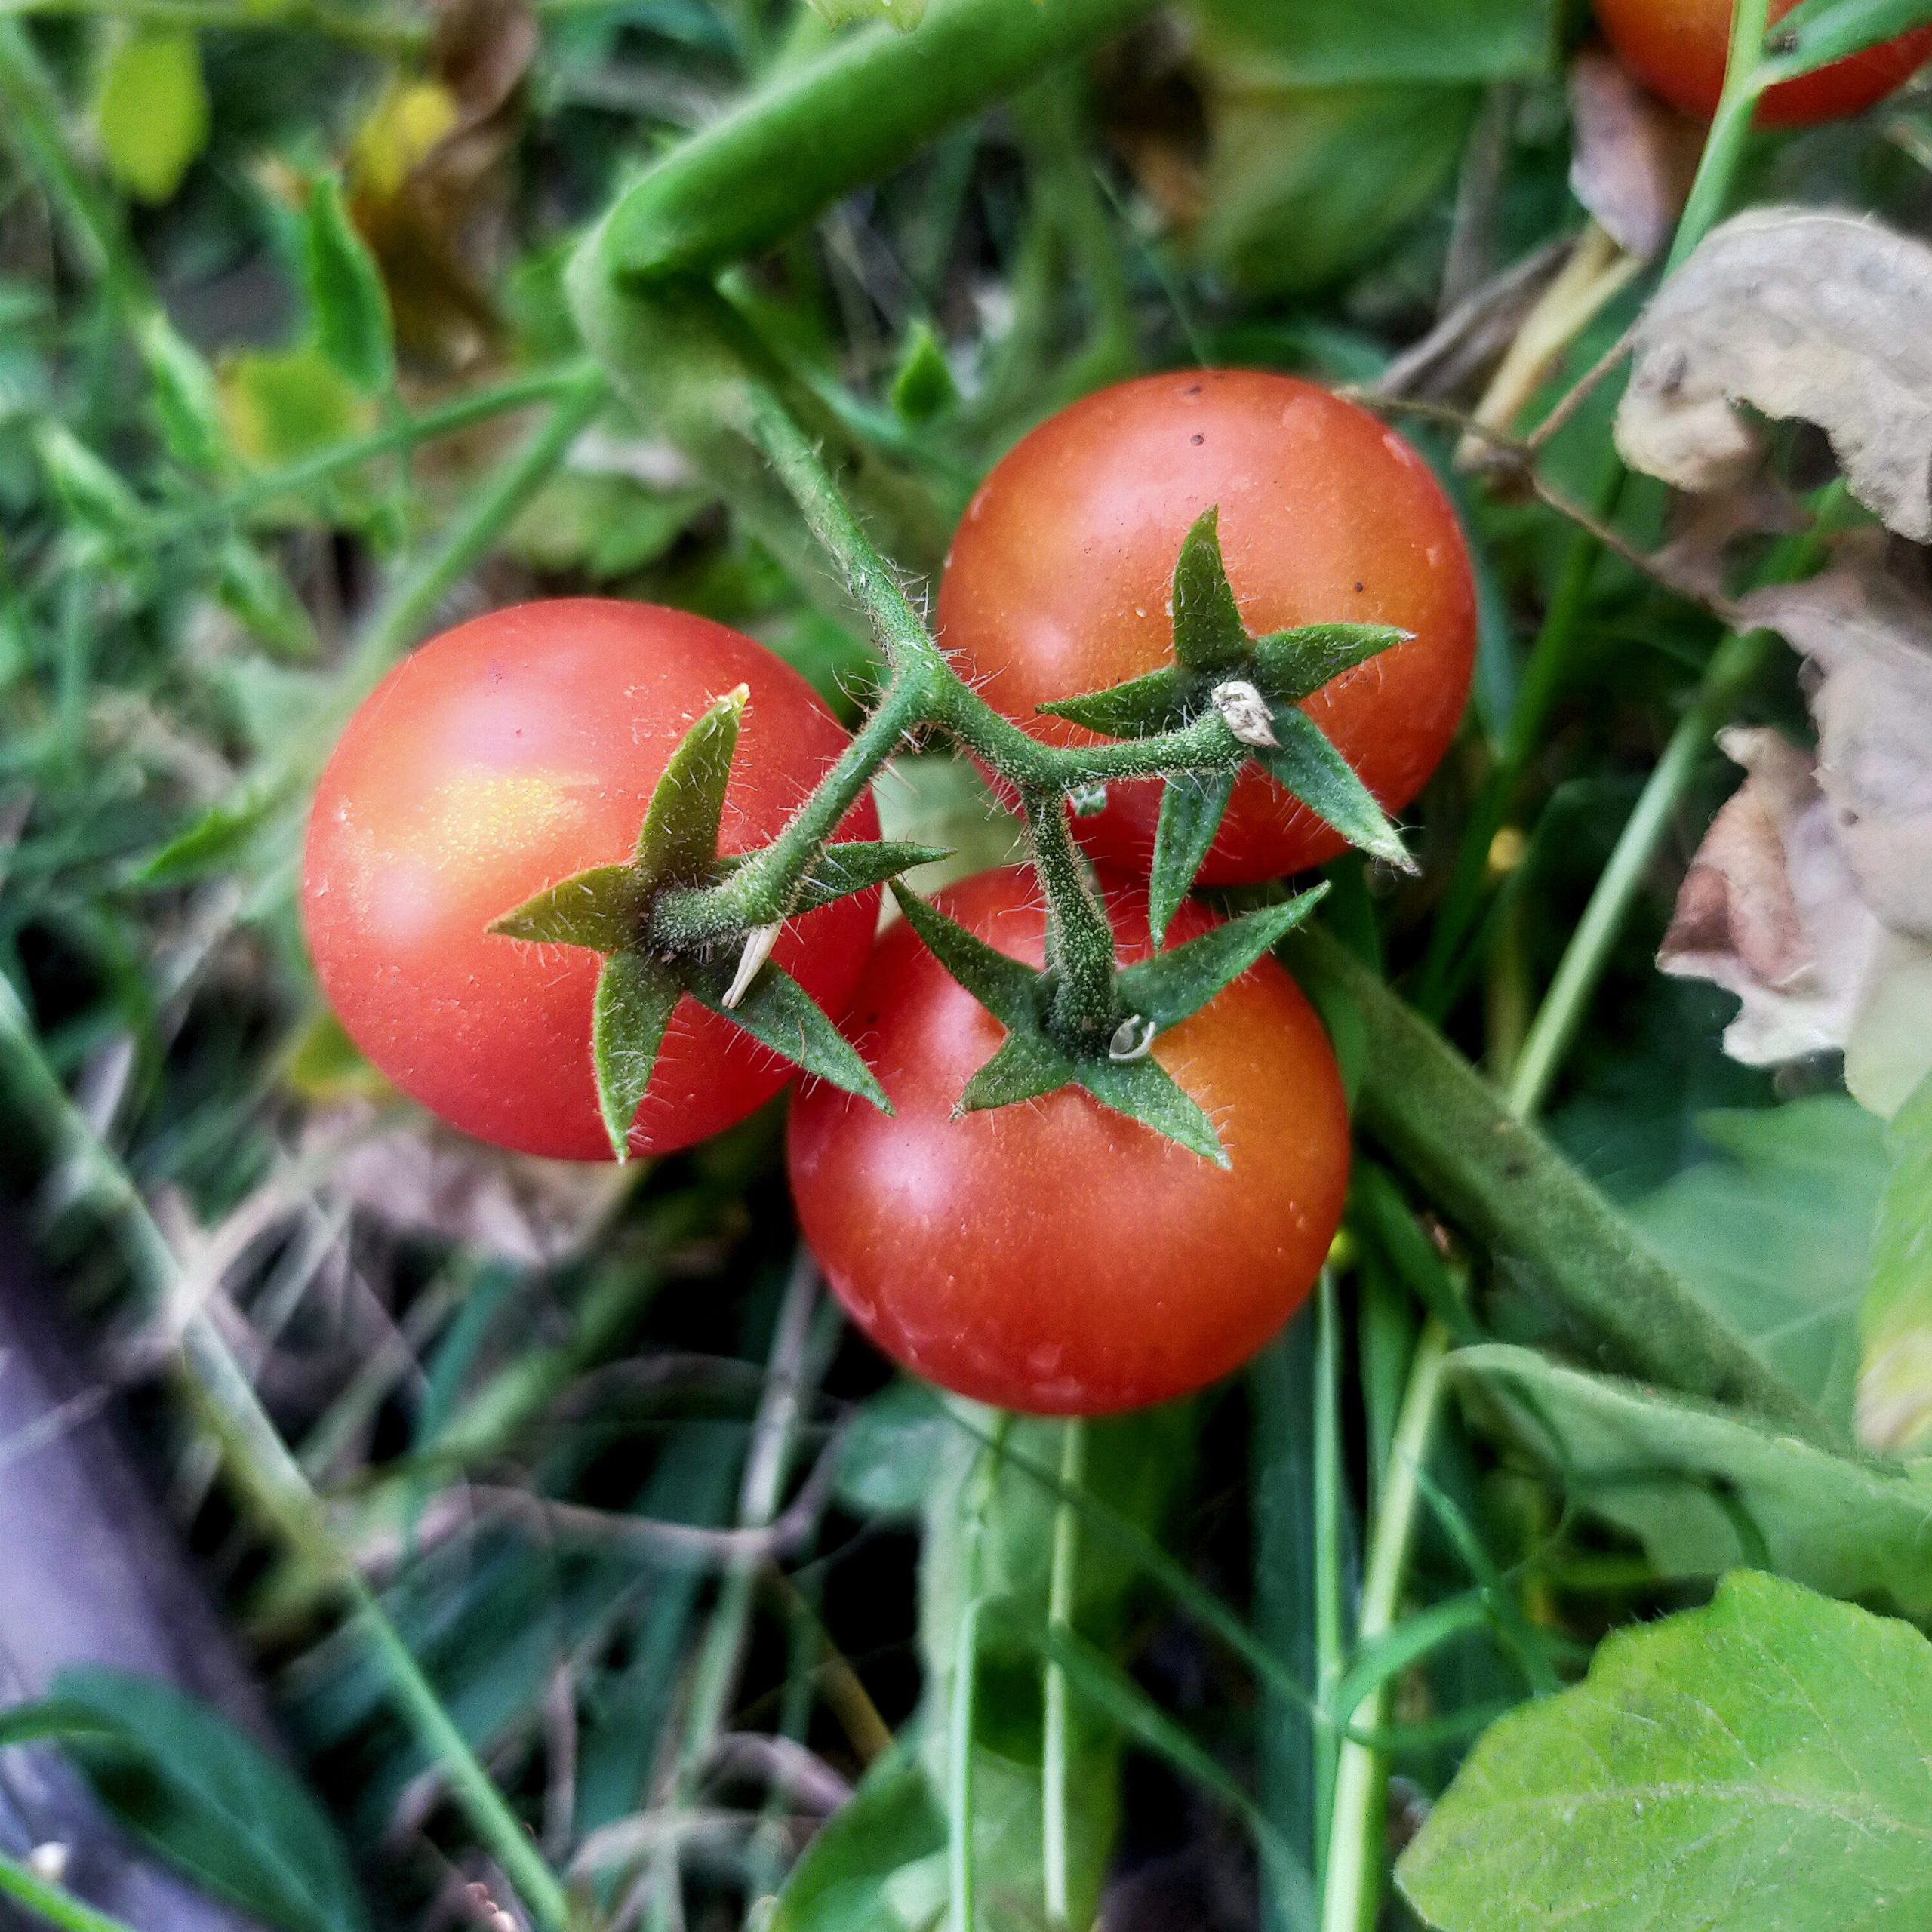 Tomatoes on plant